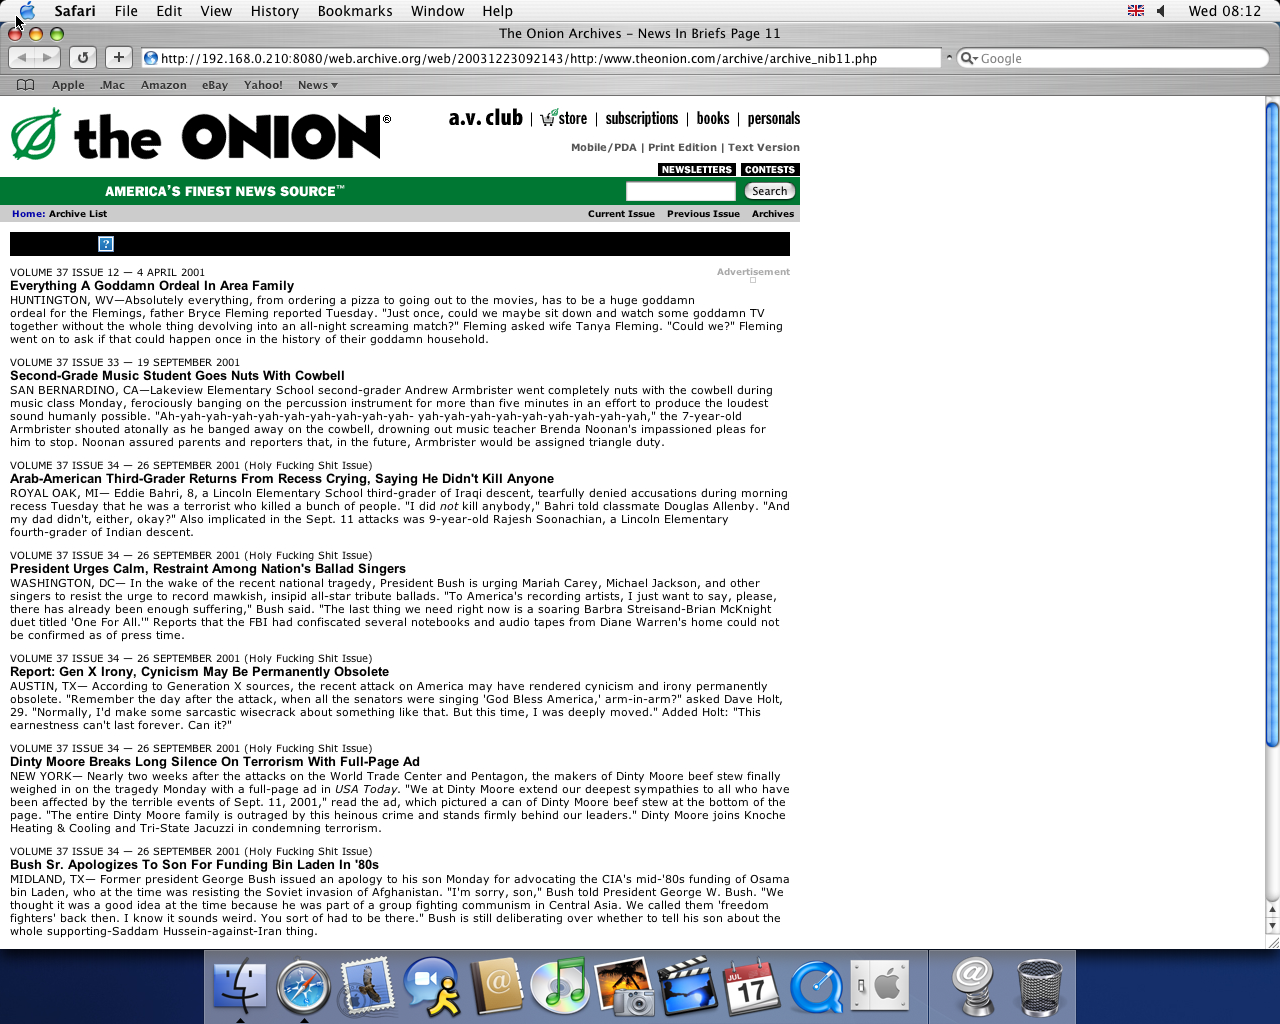 OS X 10.3 PPC with Safari 1.1 displaying a page from The Onion archived at December 23, 2003 at 09:21:43